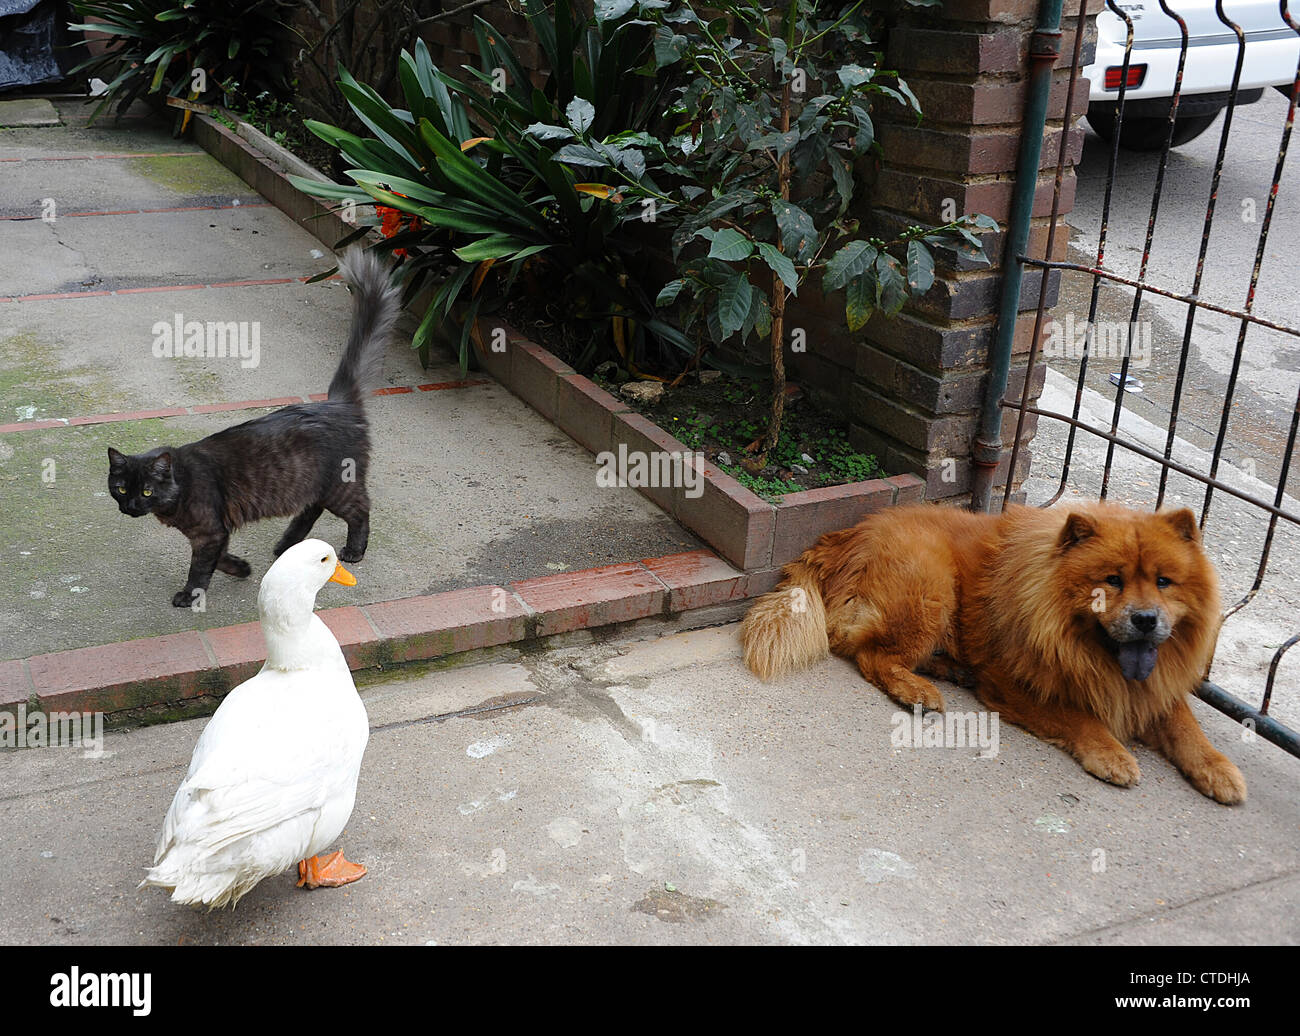 Unusual family in Colombia. - Stock Image